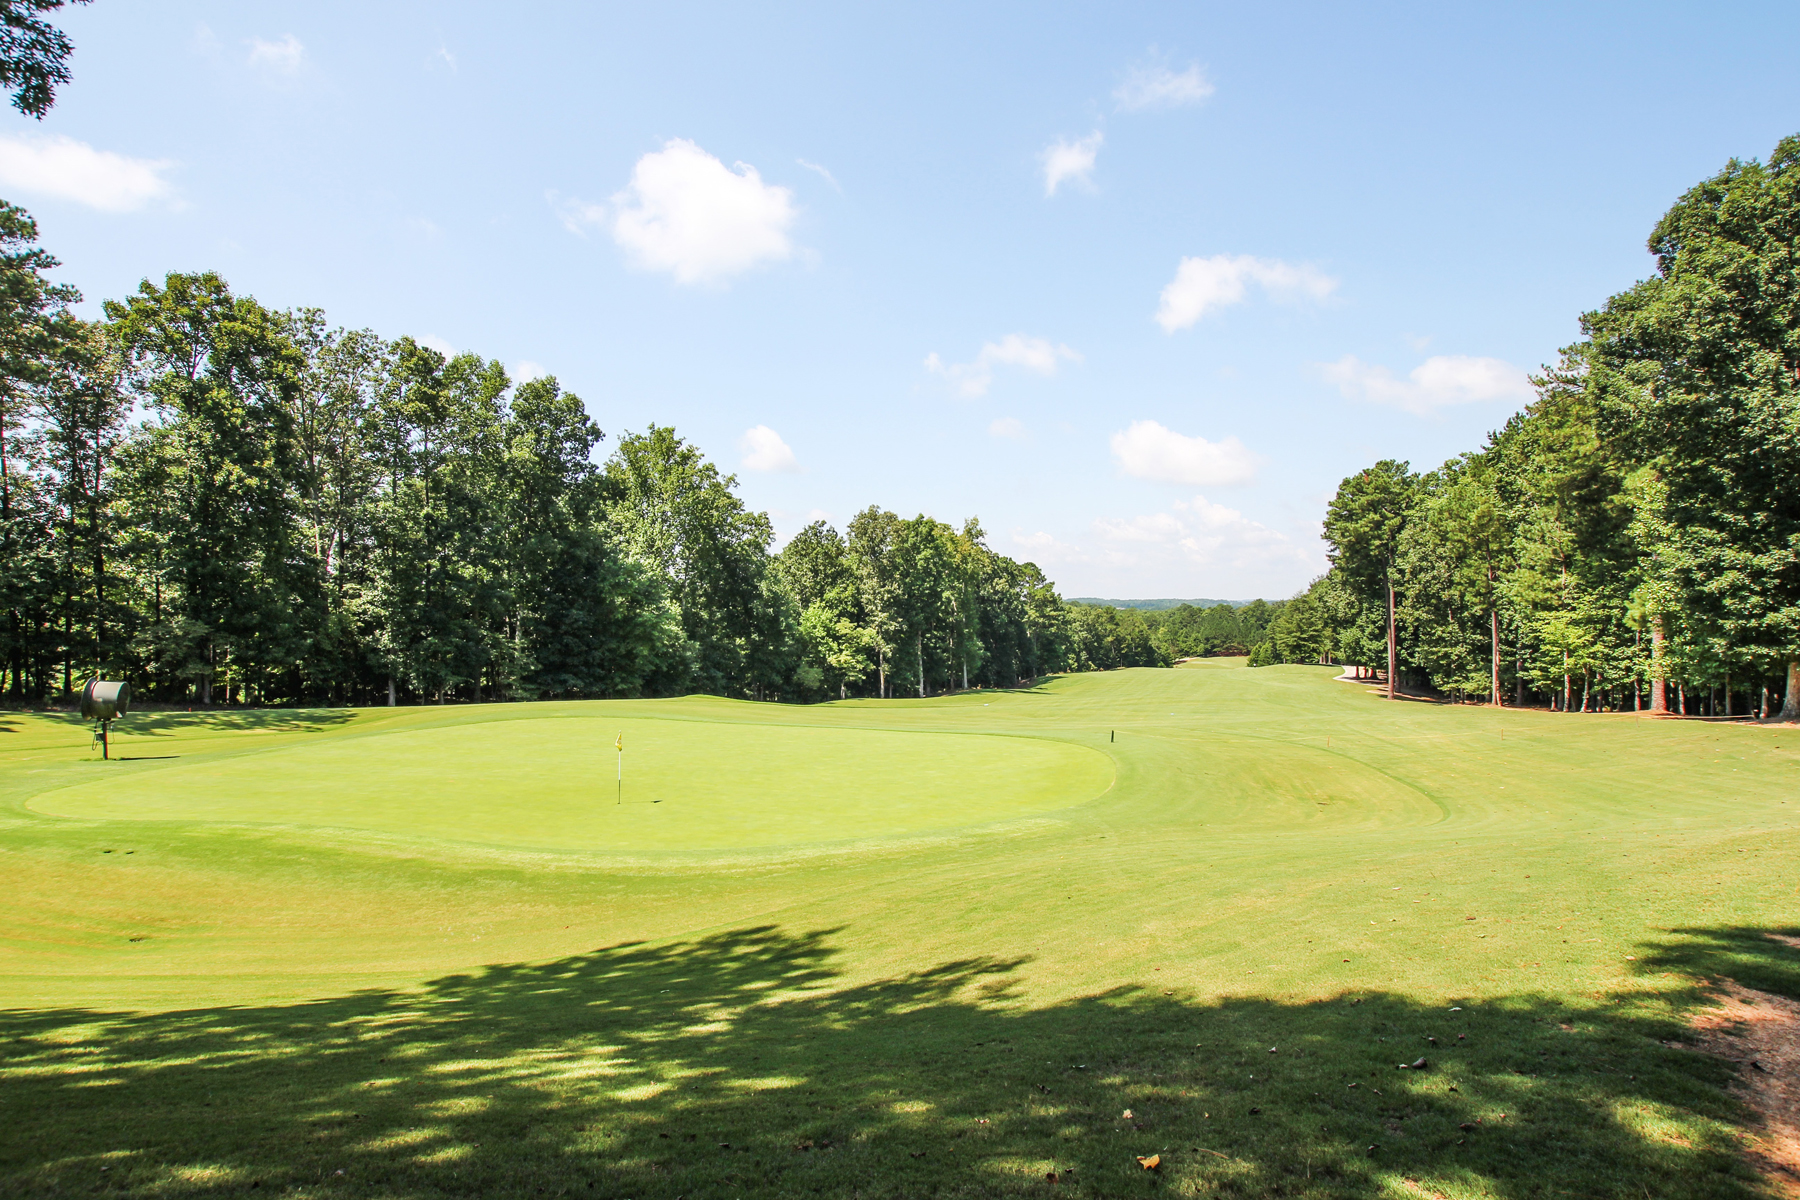 Additional photo for property listing at Country Club Golf Living At Its Finest 6309 Howell Cobb Court NW Acworth, Georgia 30101 Stati Uniti